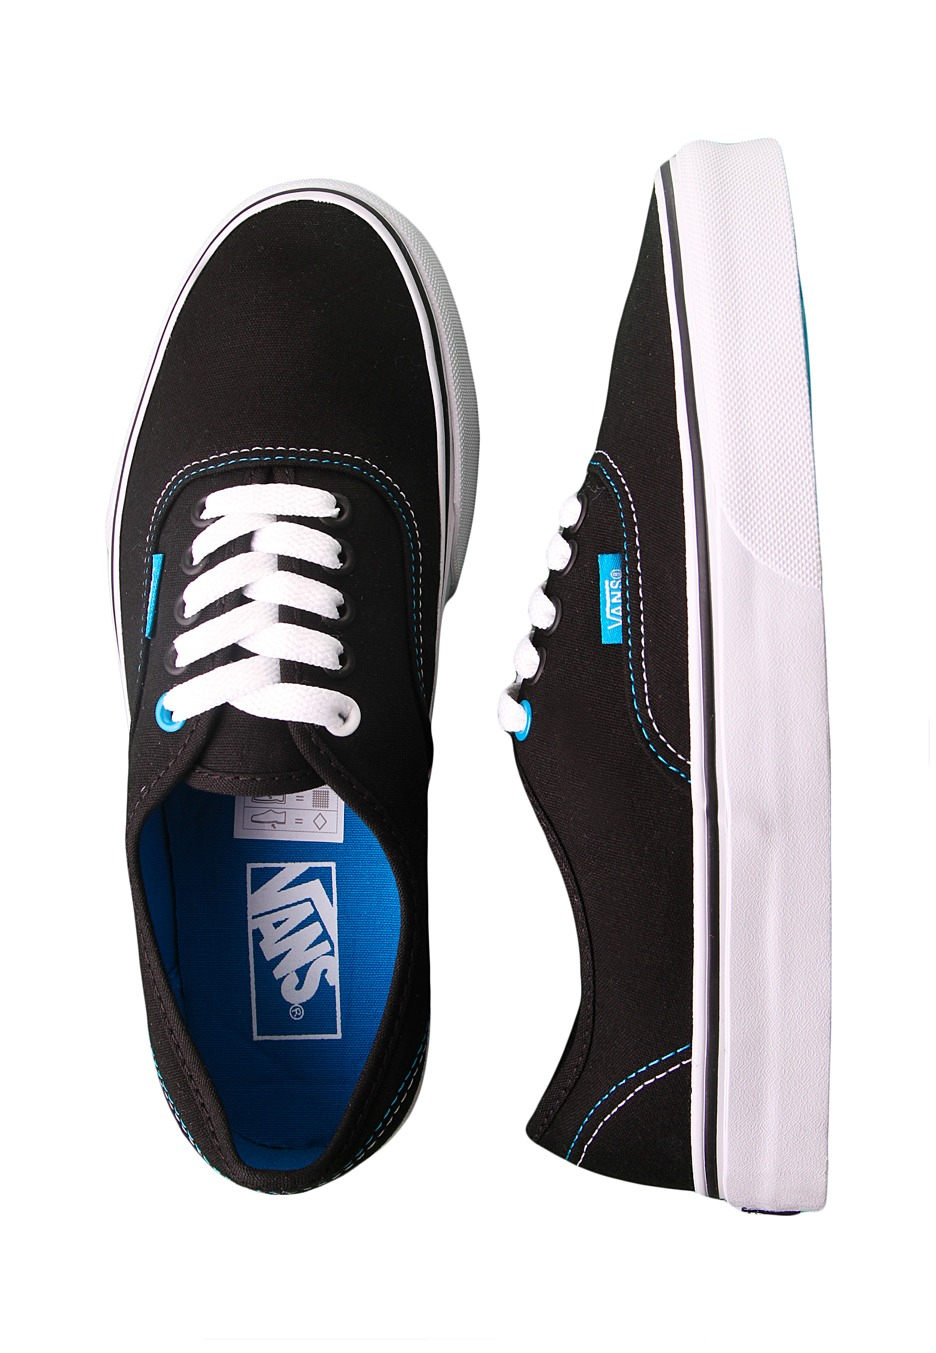 719ce09df754 Vans - Authentic Pop Black Methyl Blue - Girl Shoes - Impericon.com UK